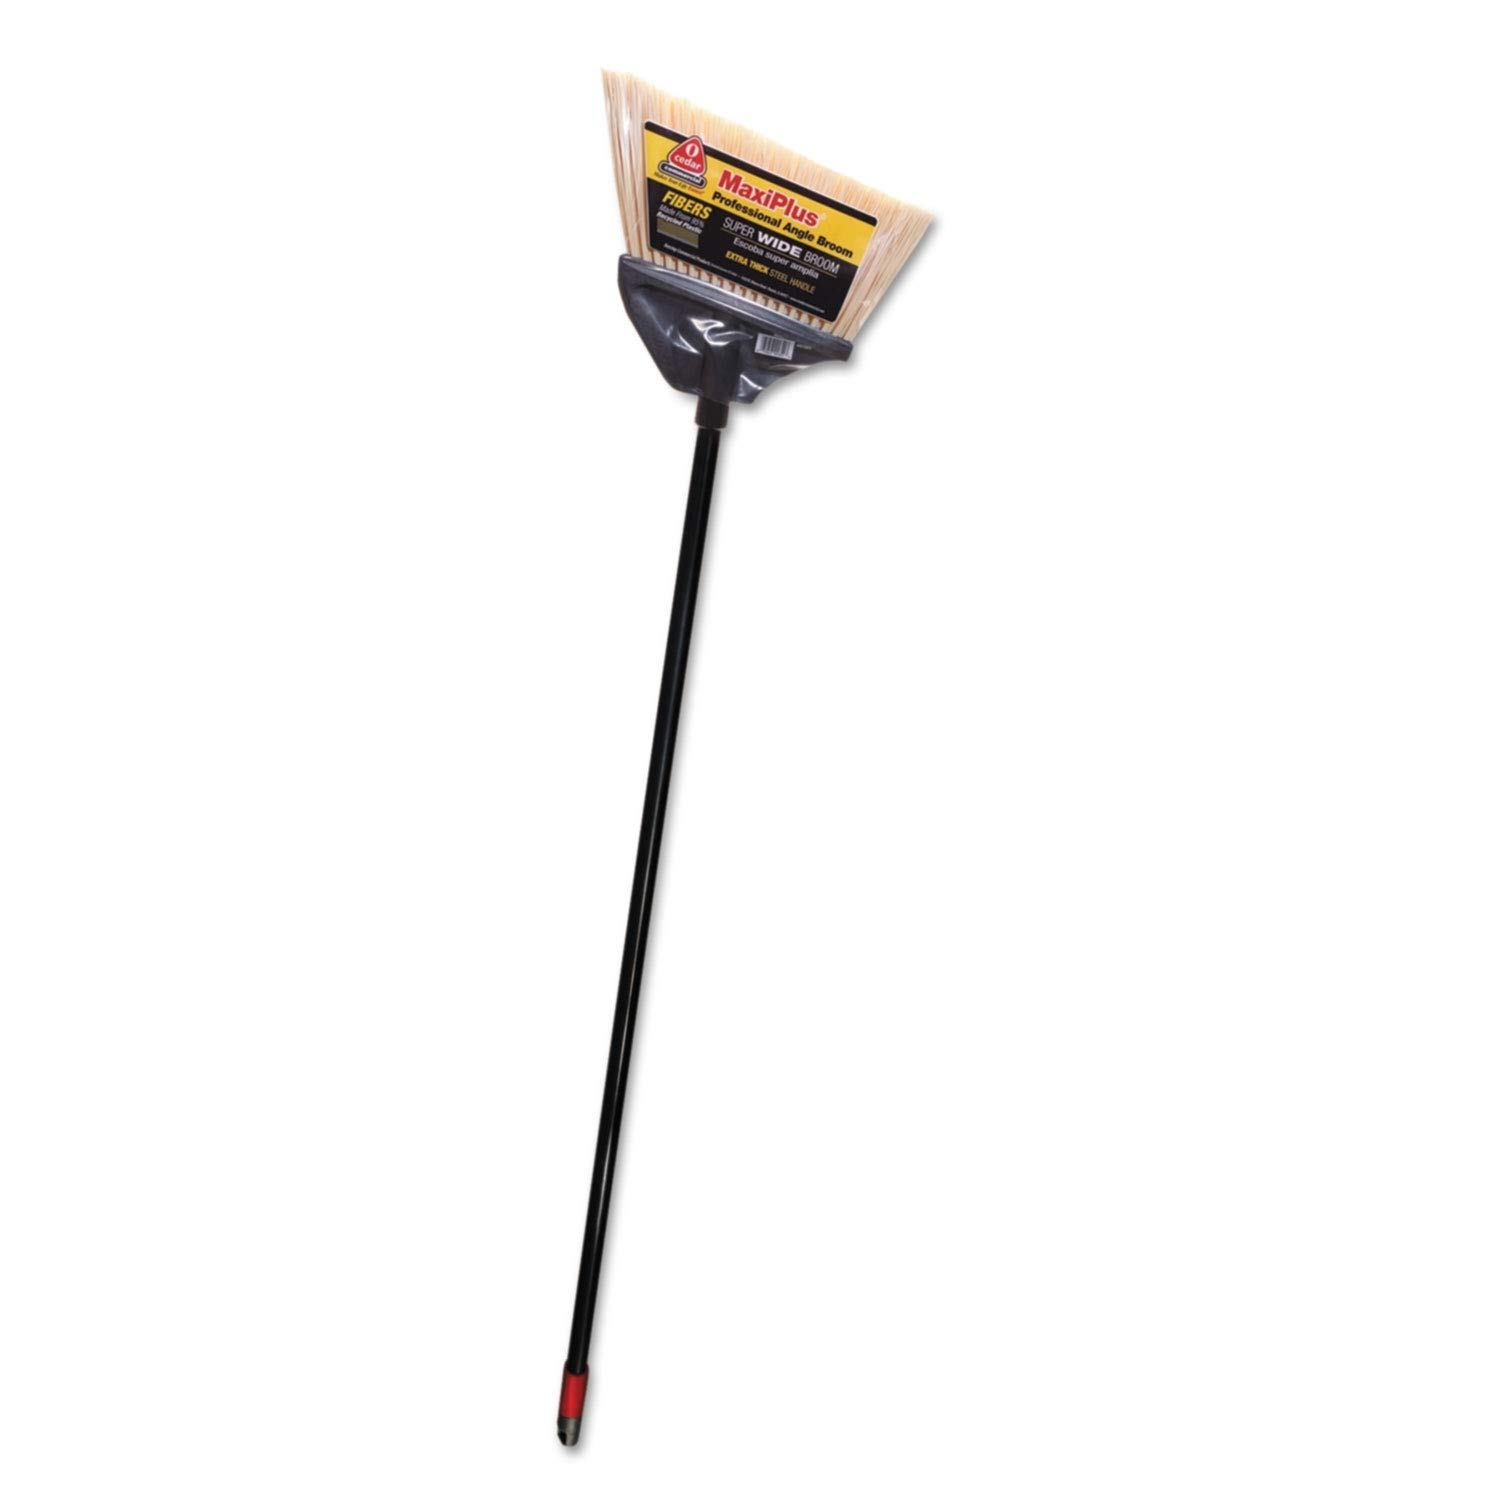 O-Cedar Commercial MaxiPlus Professional Angle Broom, Polystyrene Bristles, 51'' Handle, Black - 91351EA (Pack of 2)